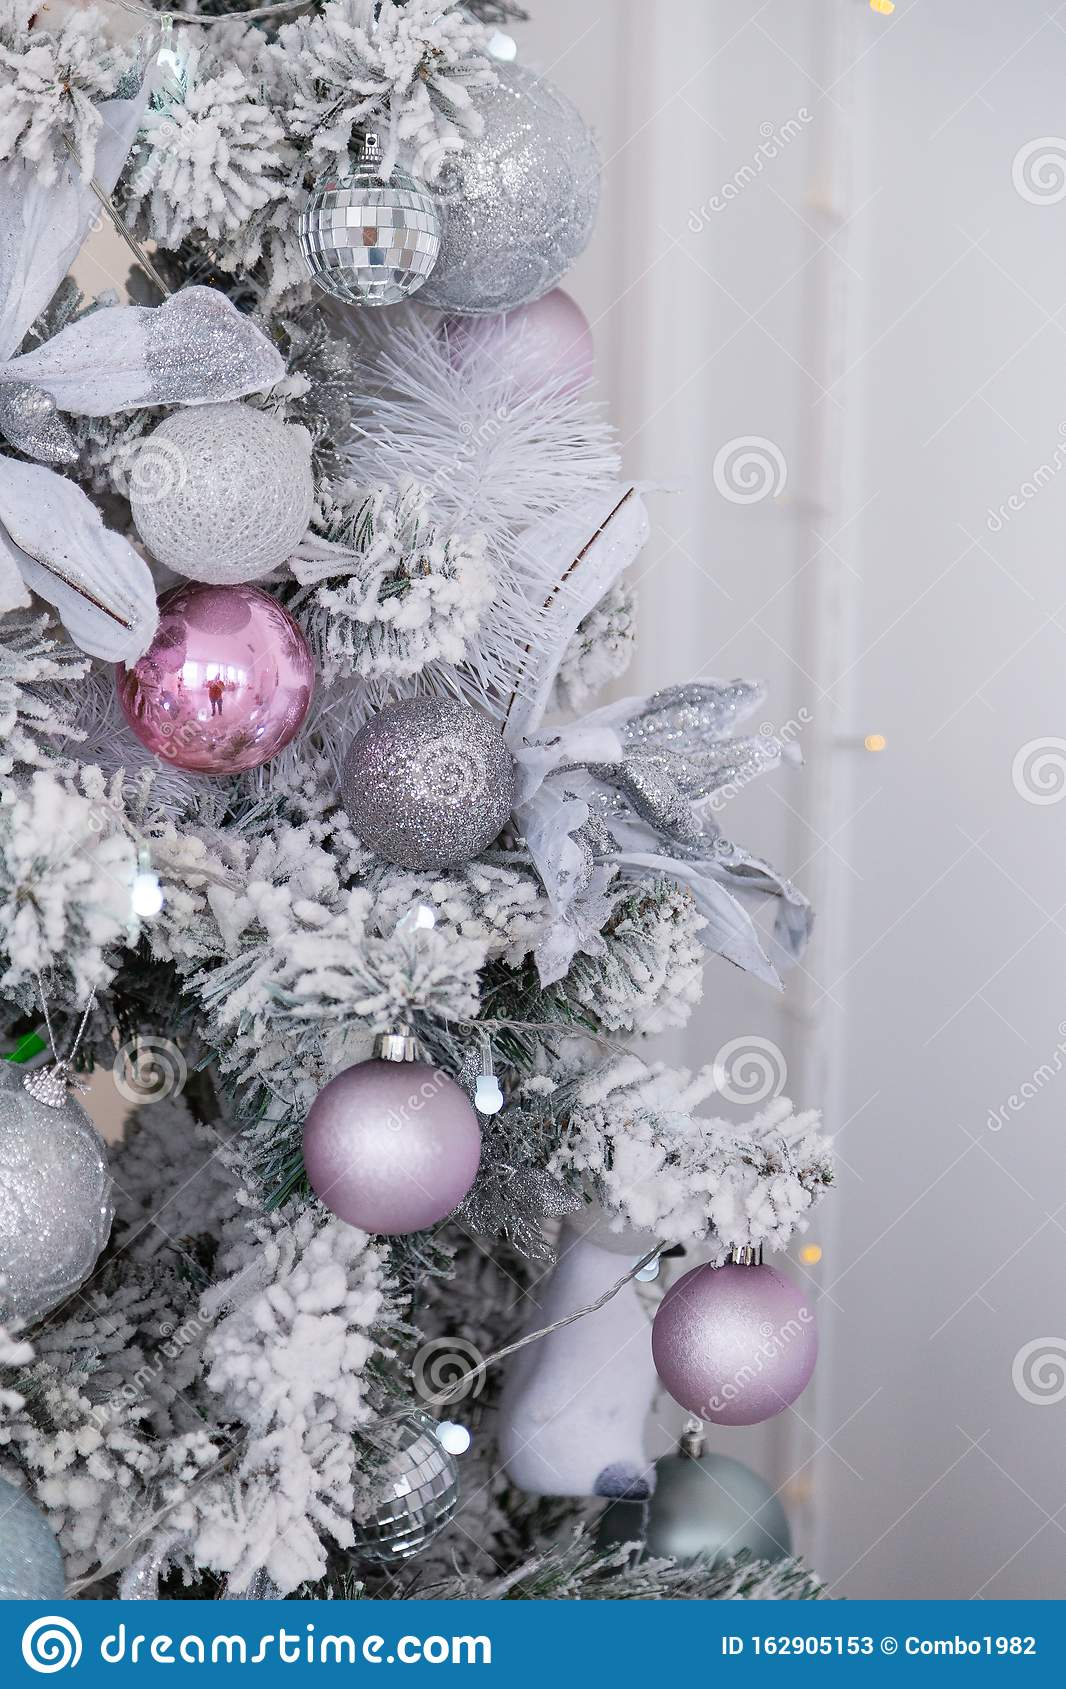 Beautiful Silver Christmas Tree With Decorations New Year 2020 Stock Image Image Of Floral Closeup 162905153